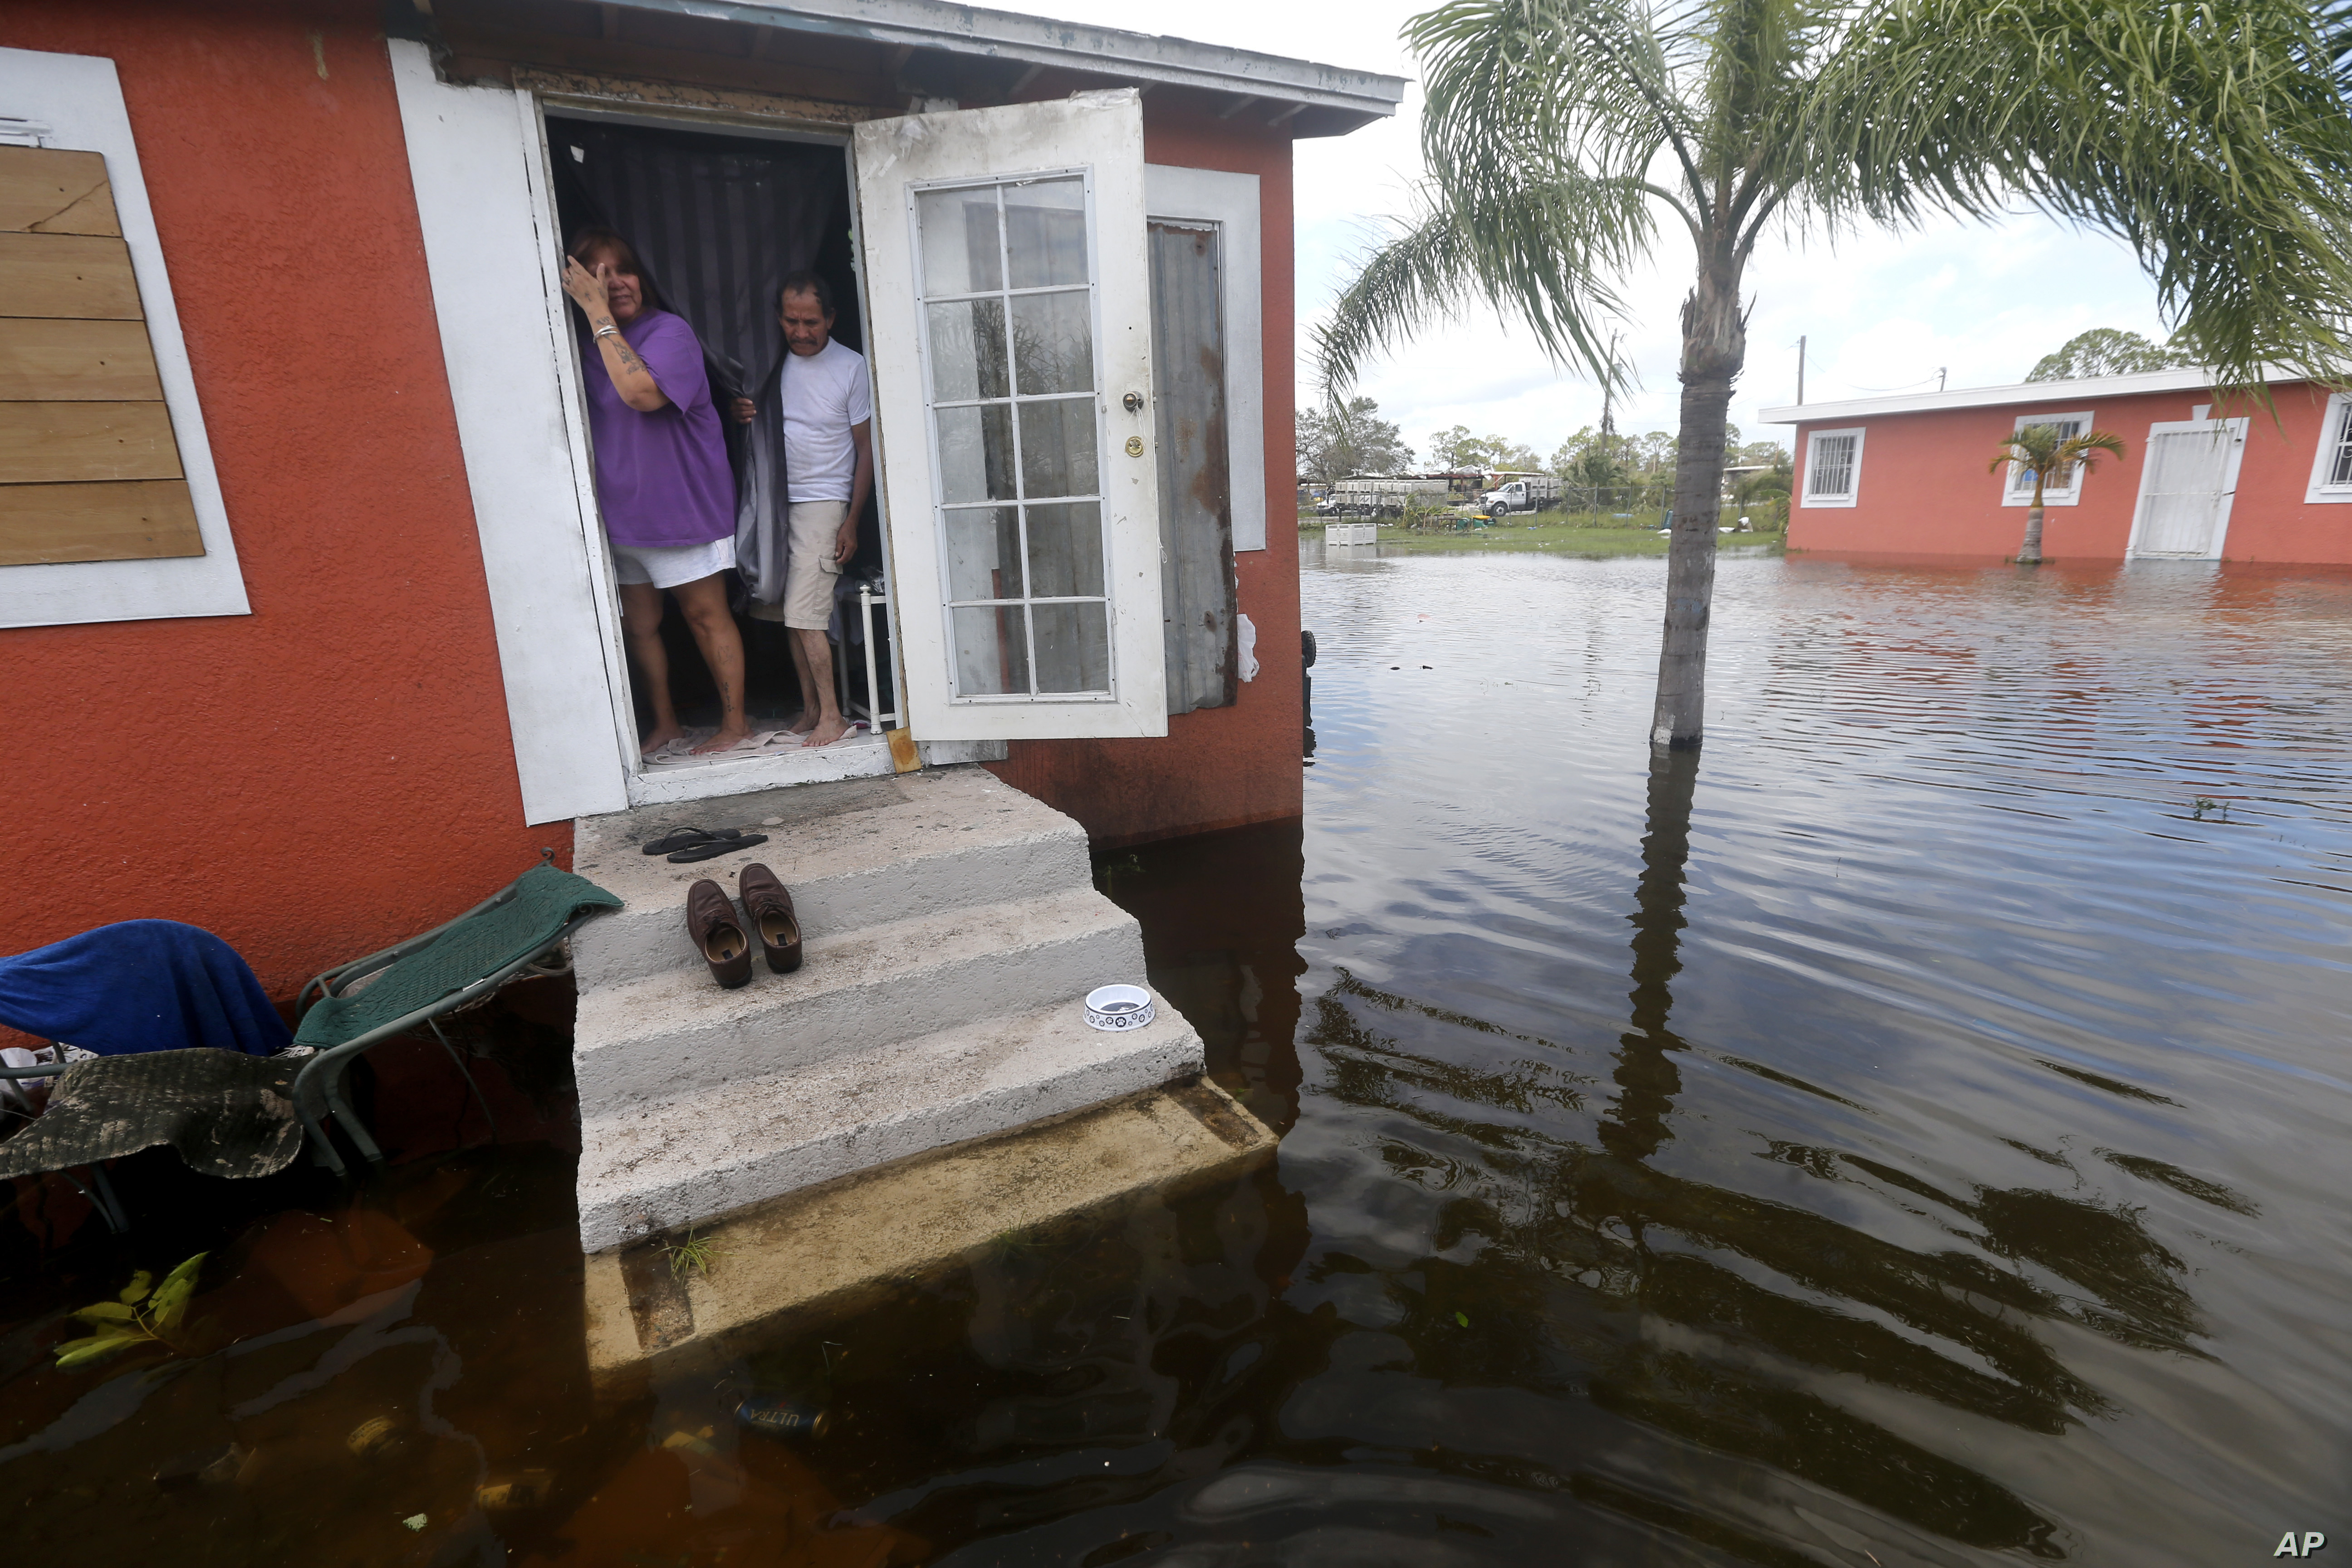 Quintana and Liz Perez look at the flooding outside their home in the aftermath of Hurricane Irma, Sept. 11, 2017, in Immokalee, Fla.